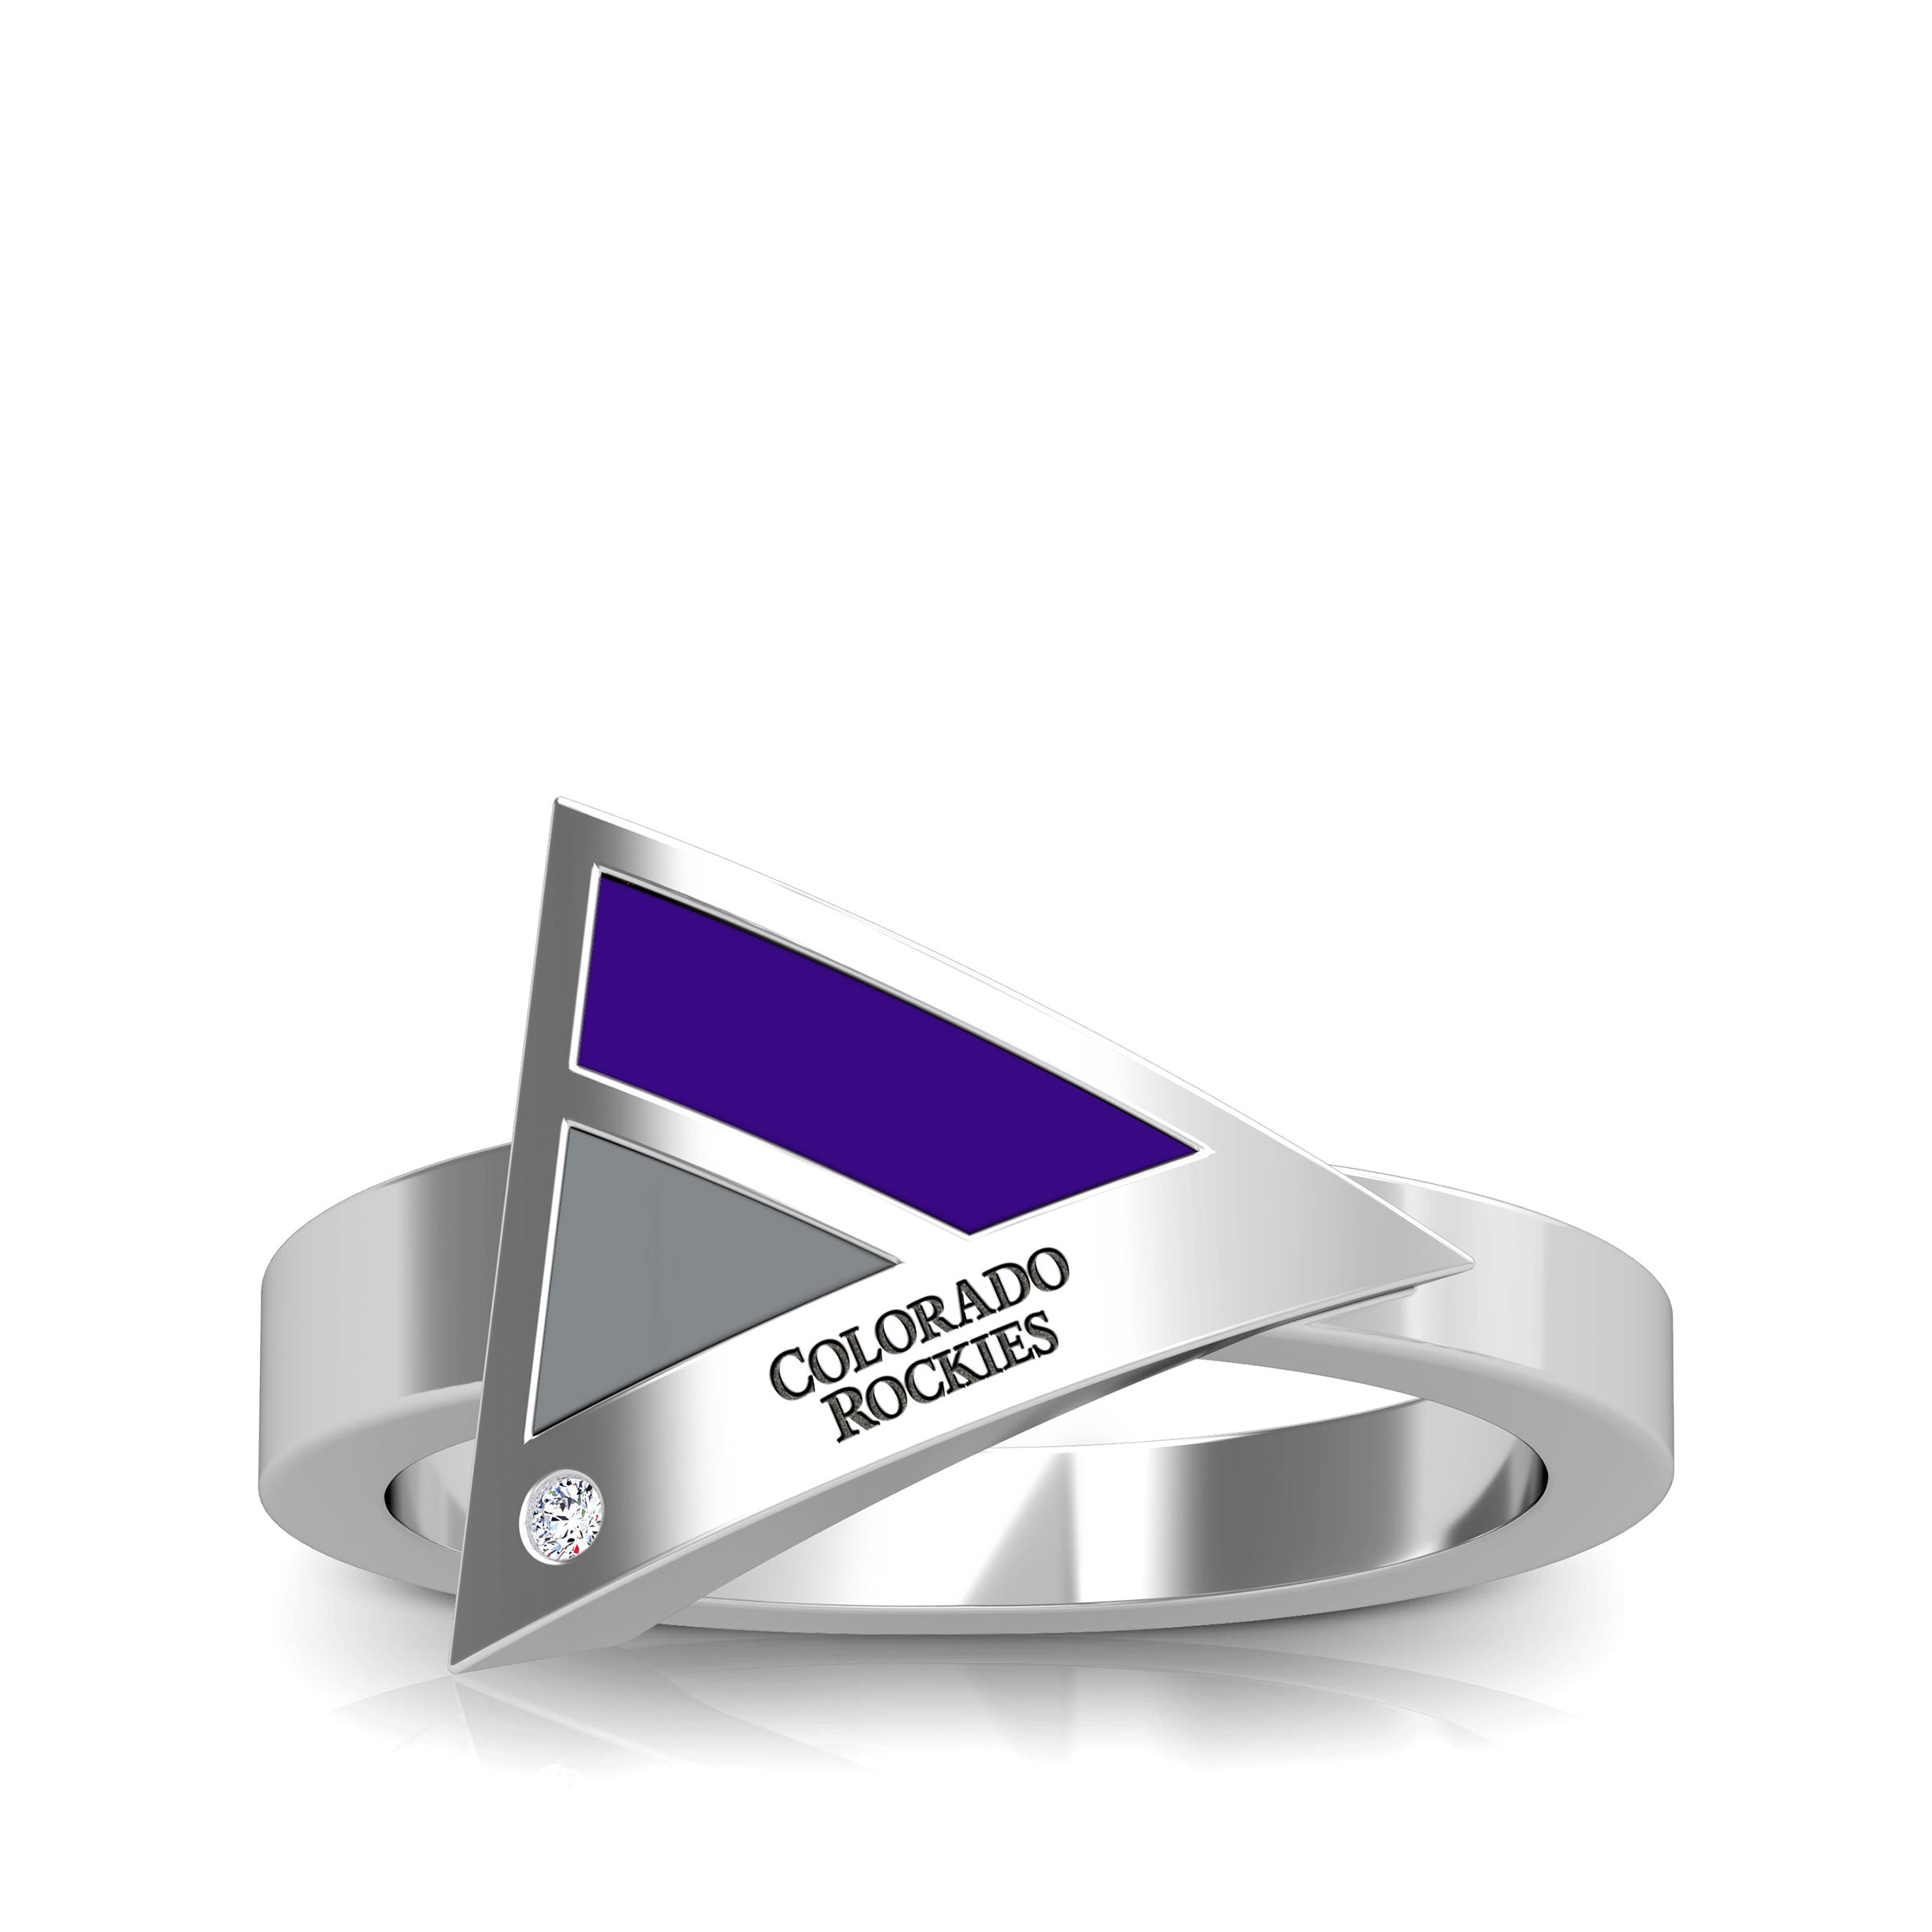 Rockies Engraved Diamond Geometric Ring in Purple and Light Grey Size 10